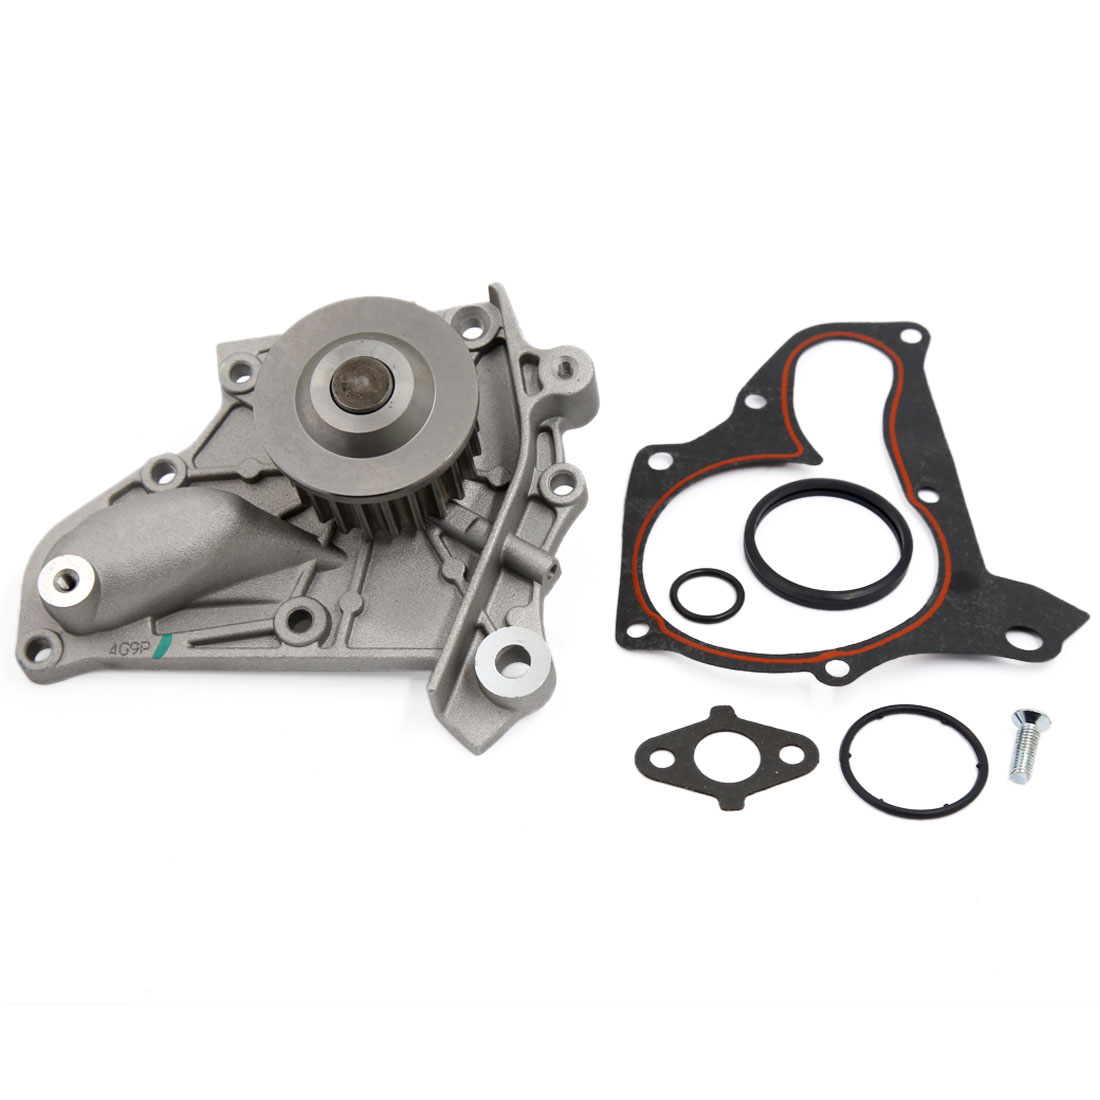 Replacement OE1611079045 Water Pump For Toyota Camry